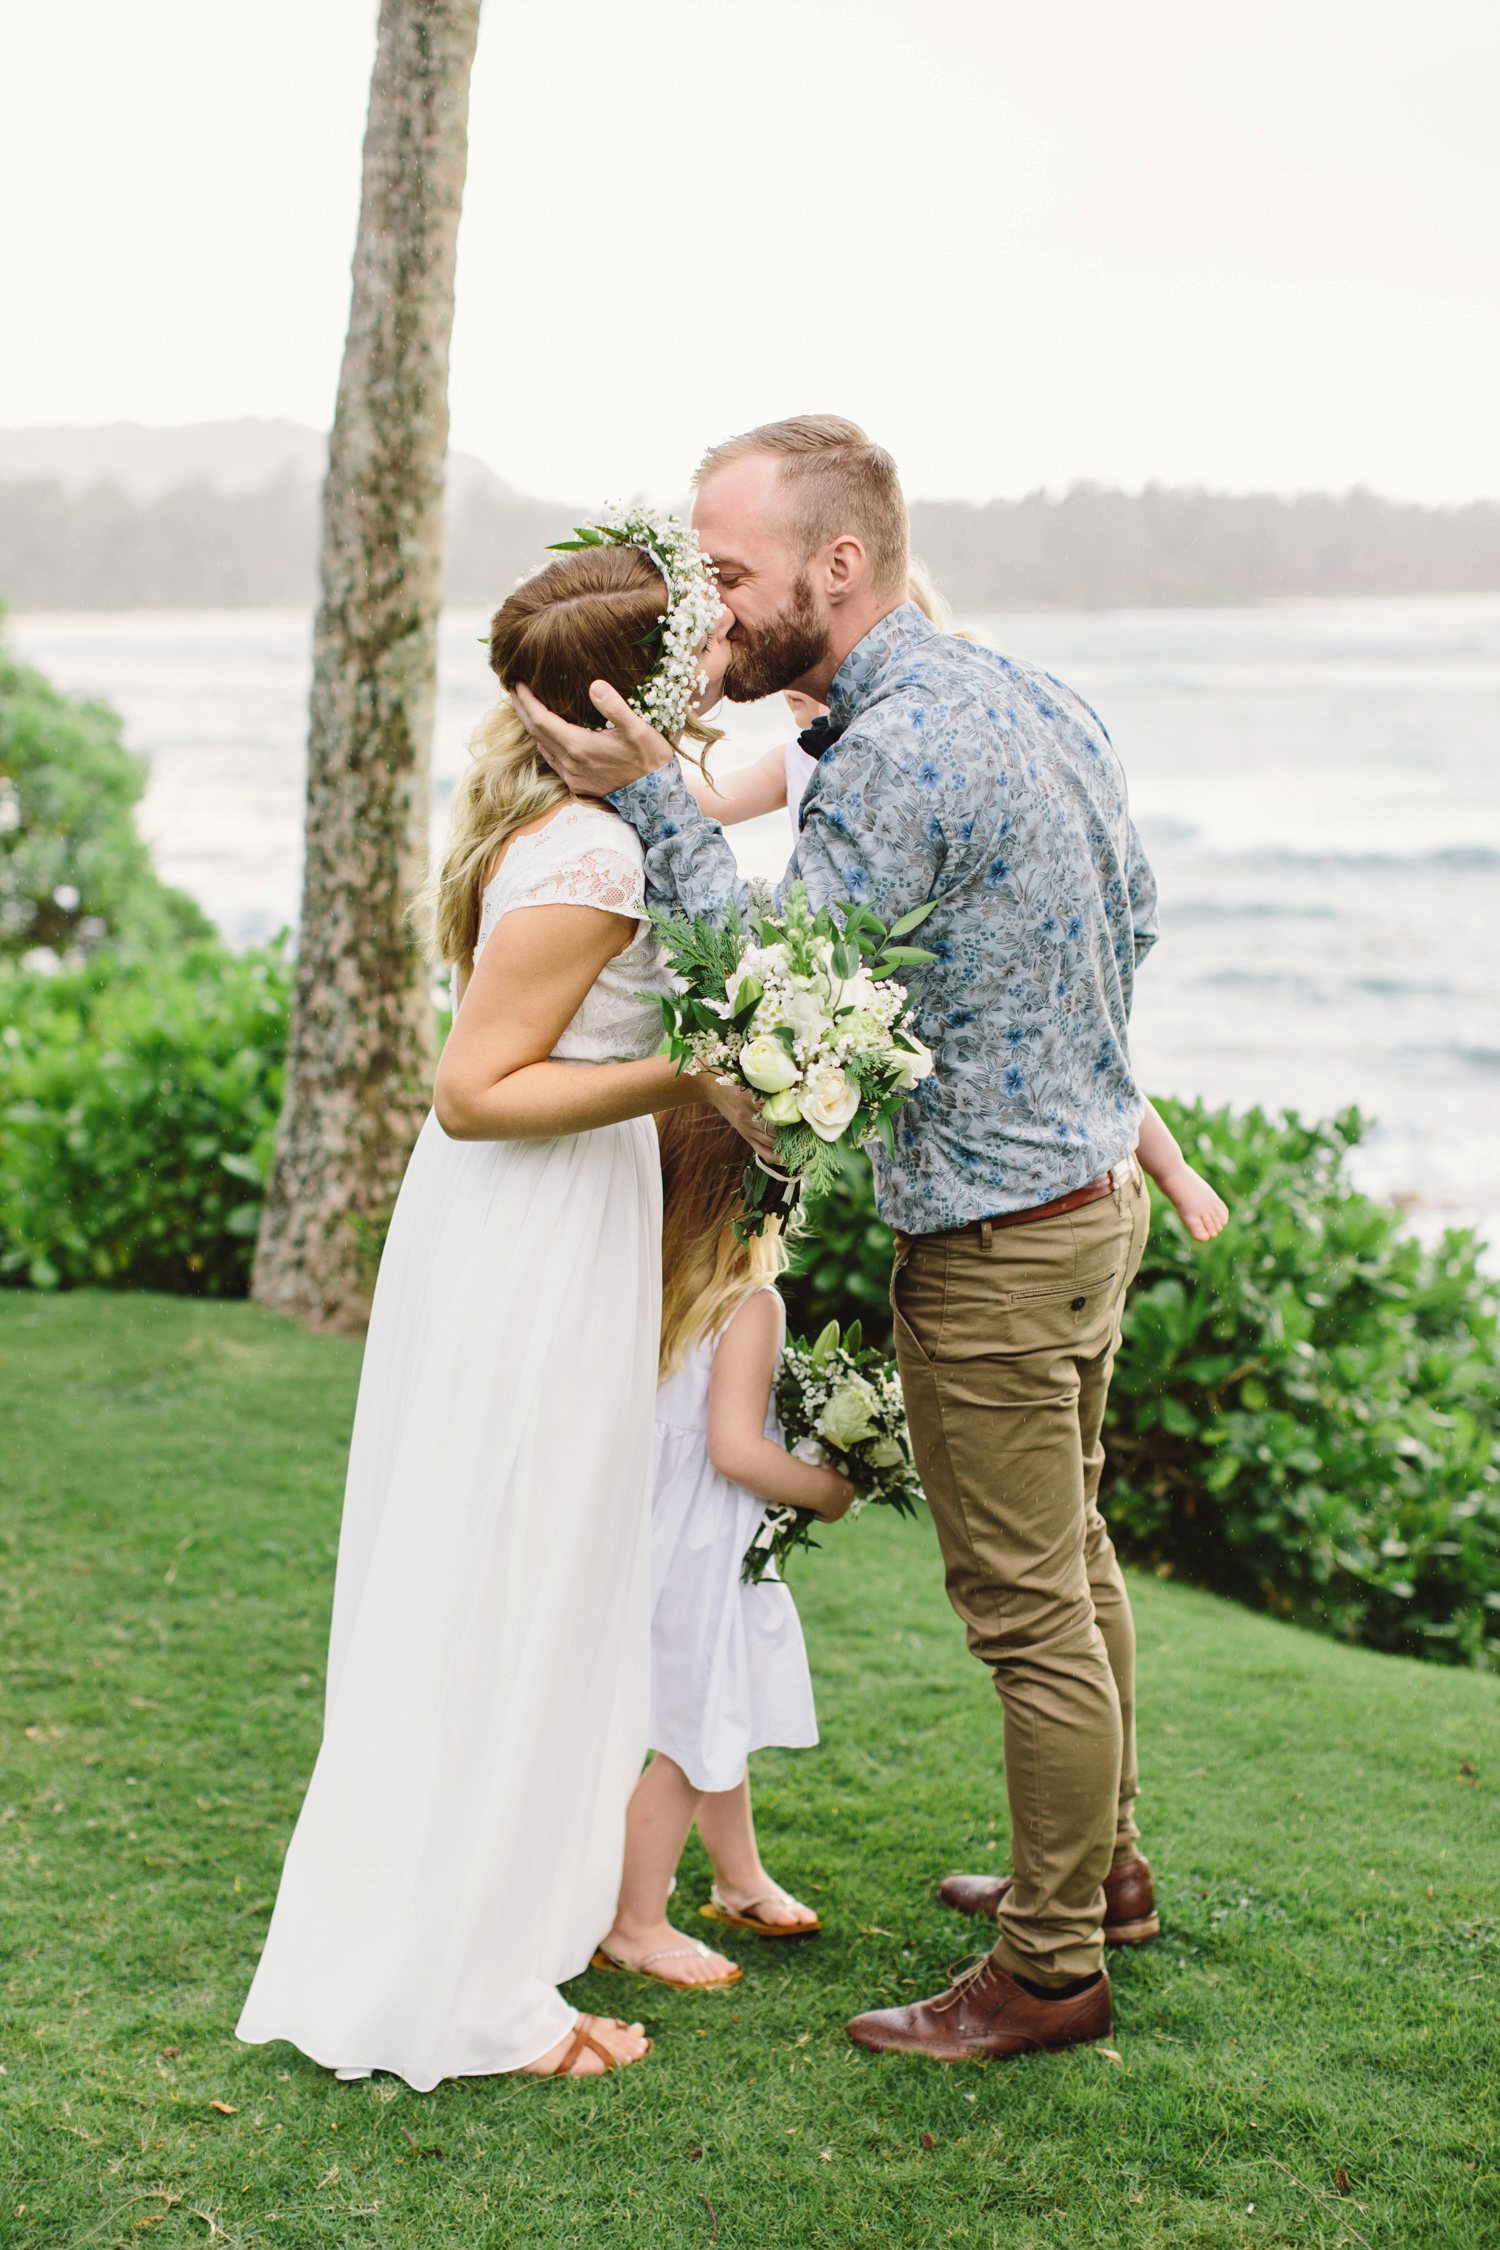 annika-pele-hawaii-elopement-007.jpg